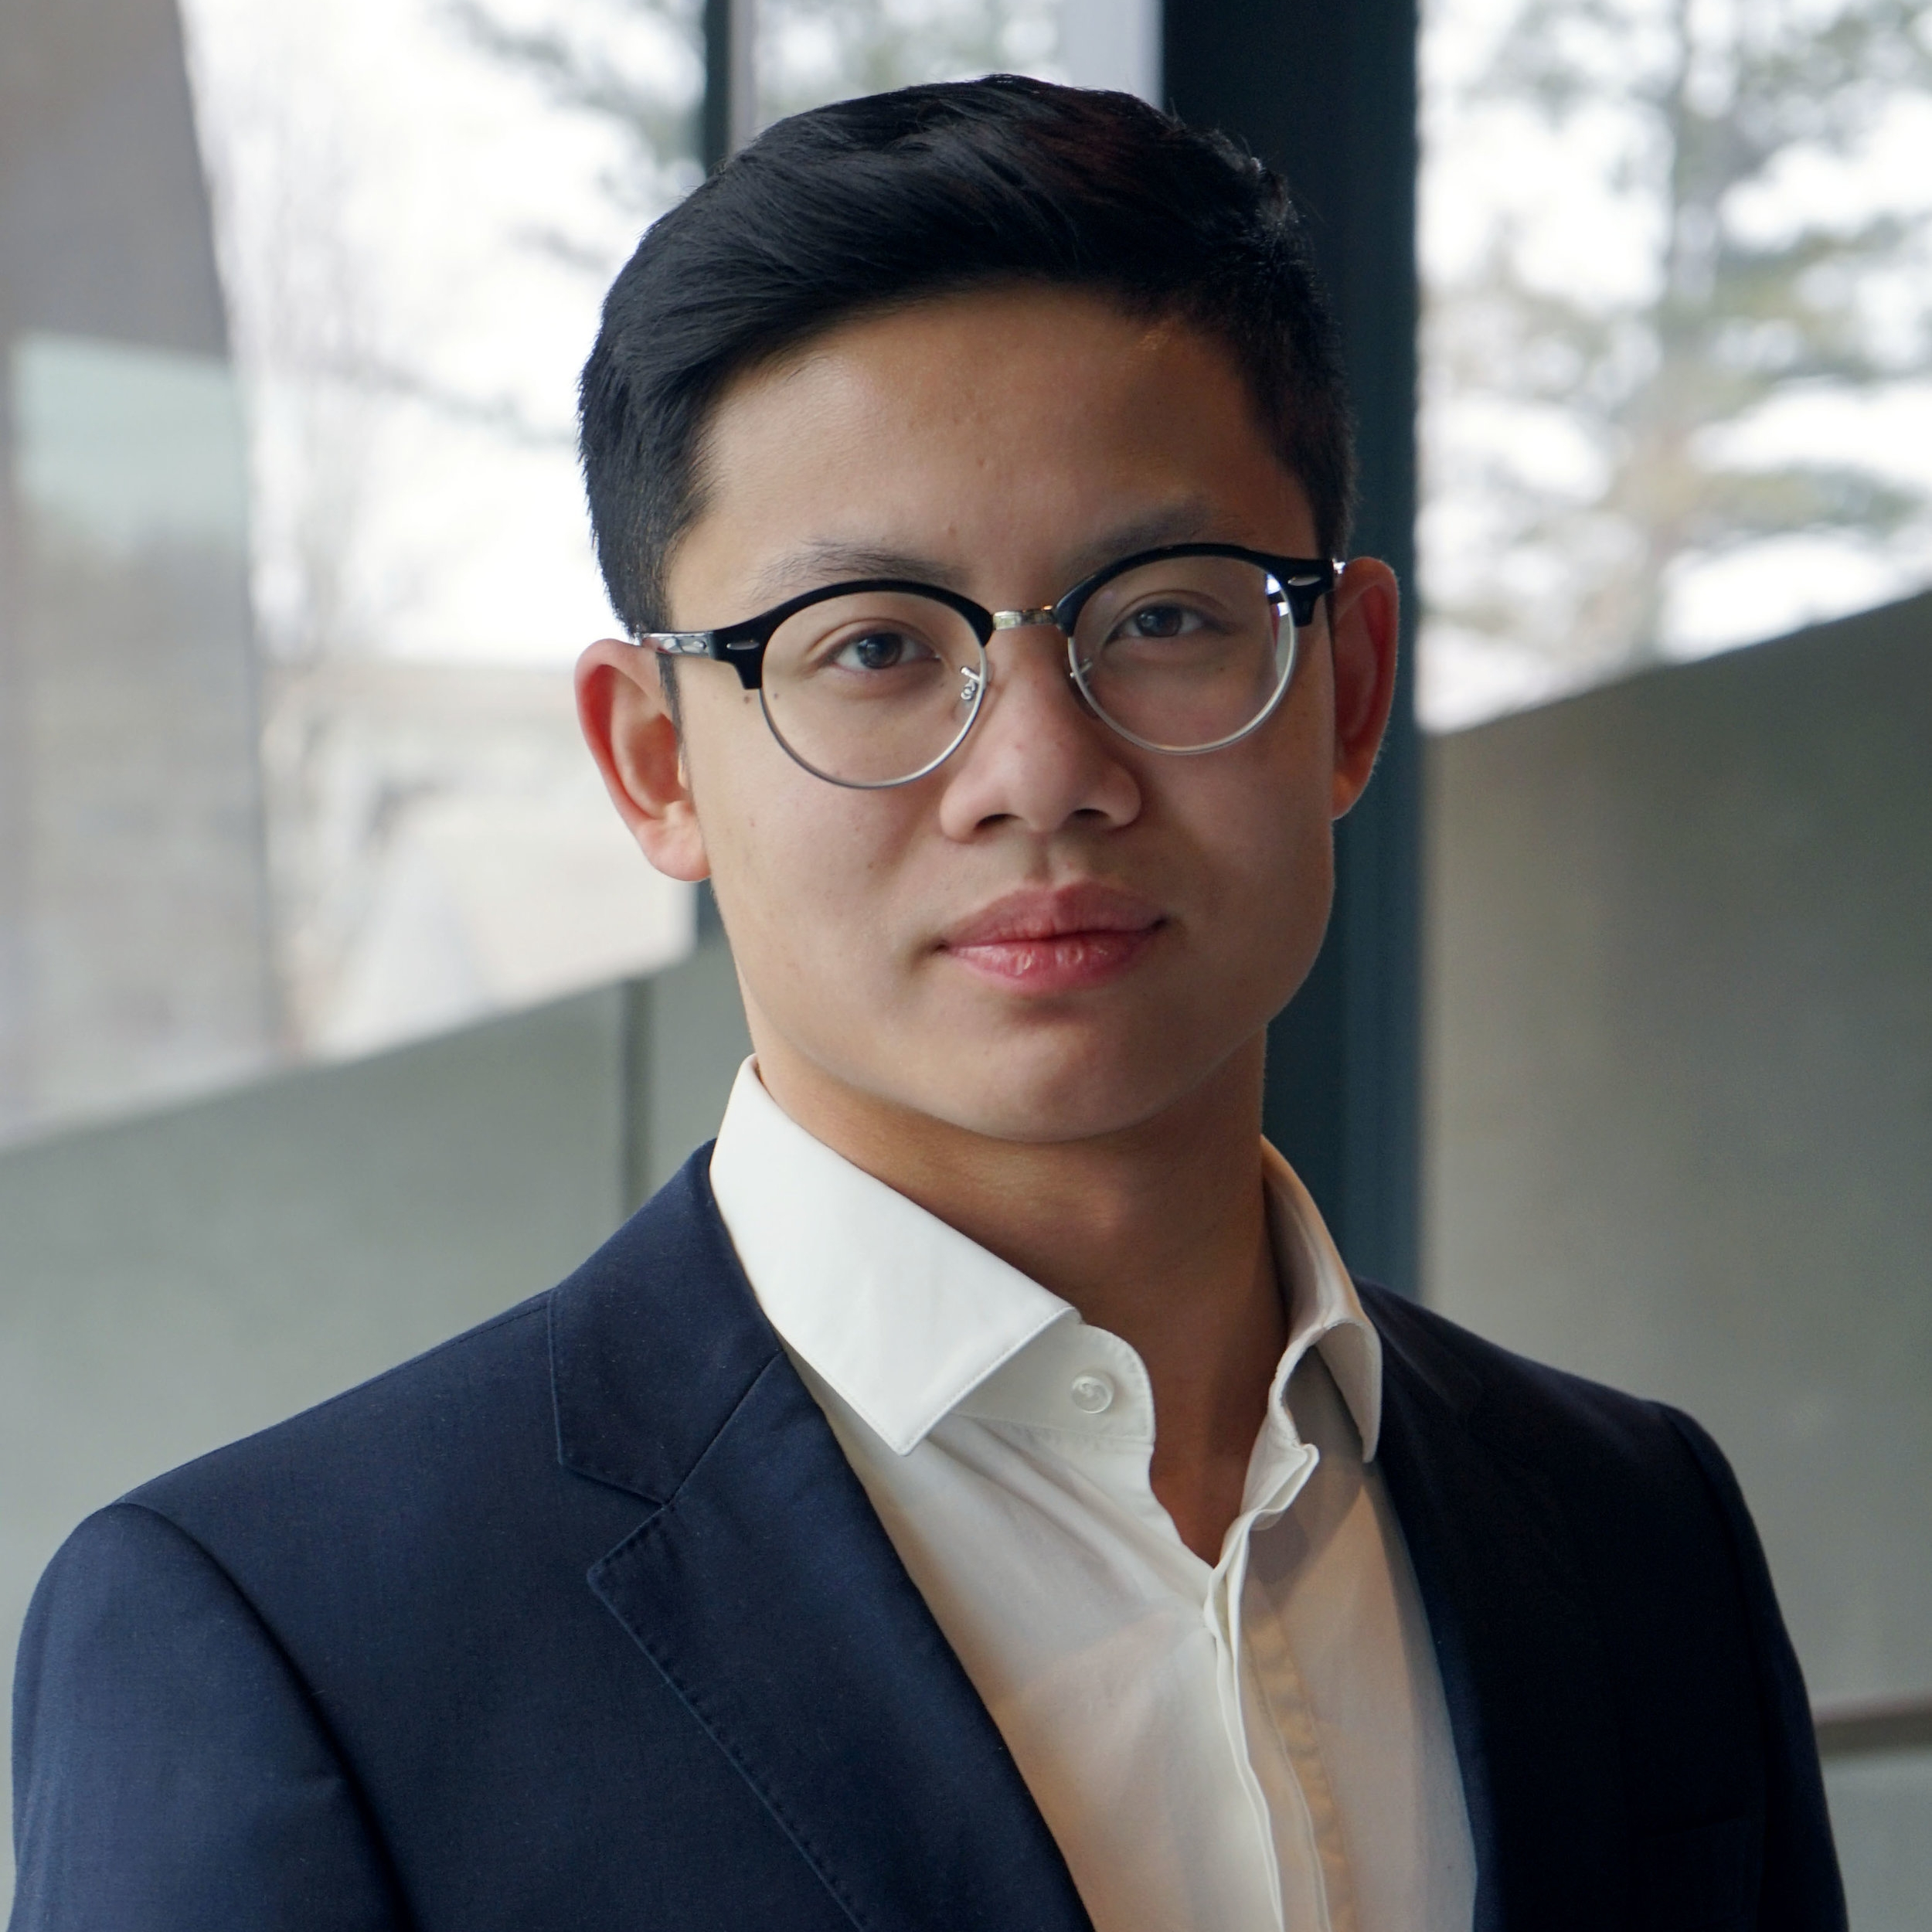 Tony Dang | Associate    Hotel Administration, 2021   I ntern at Life Changing Labs Startup Incubator    Life Changing Labs Organizing Committee, Cornell Entrepreneurship Club